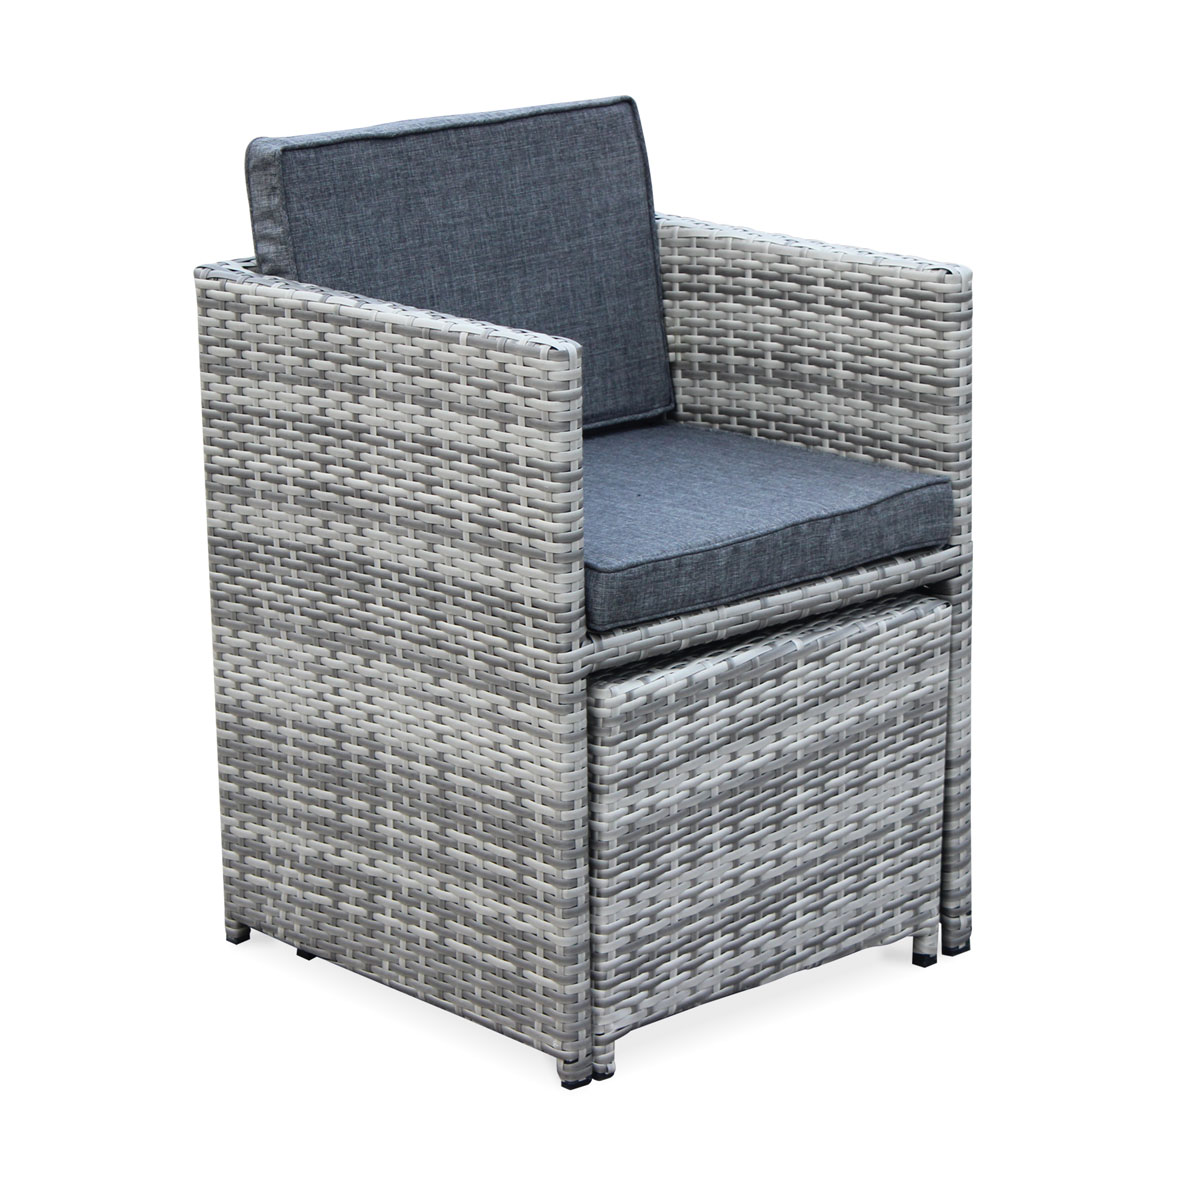 VASTO 8 Cube Dining Set Wicker Mix Grey